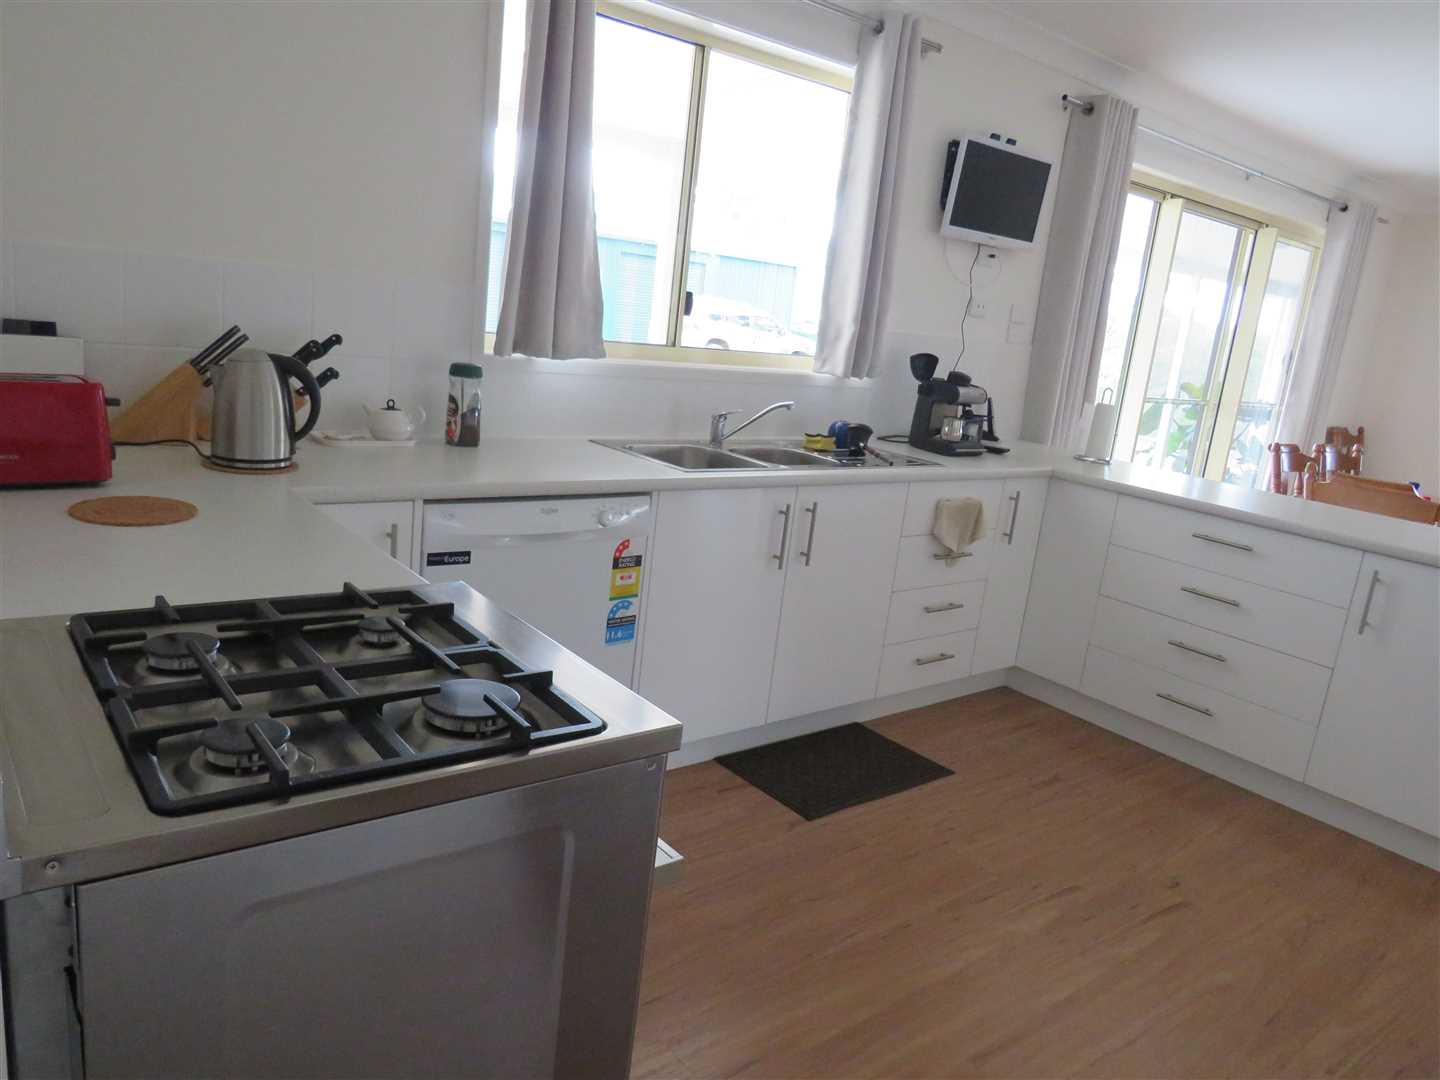 Free standing gas stove with electric grill and gas oven/cooktop,